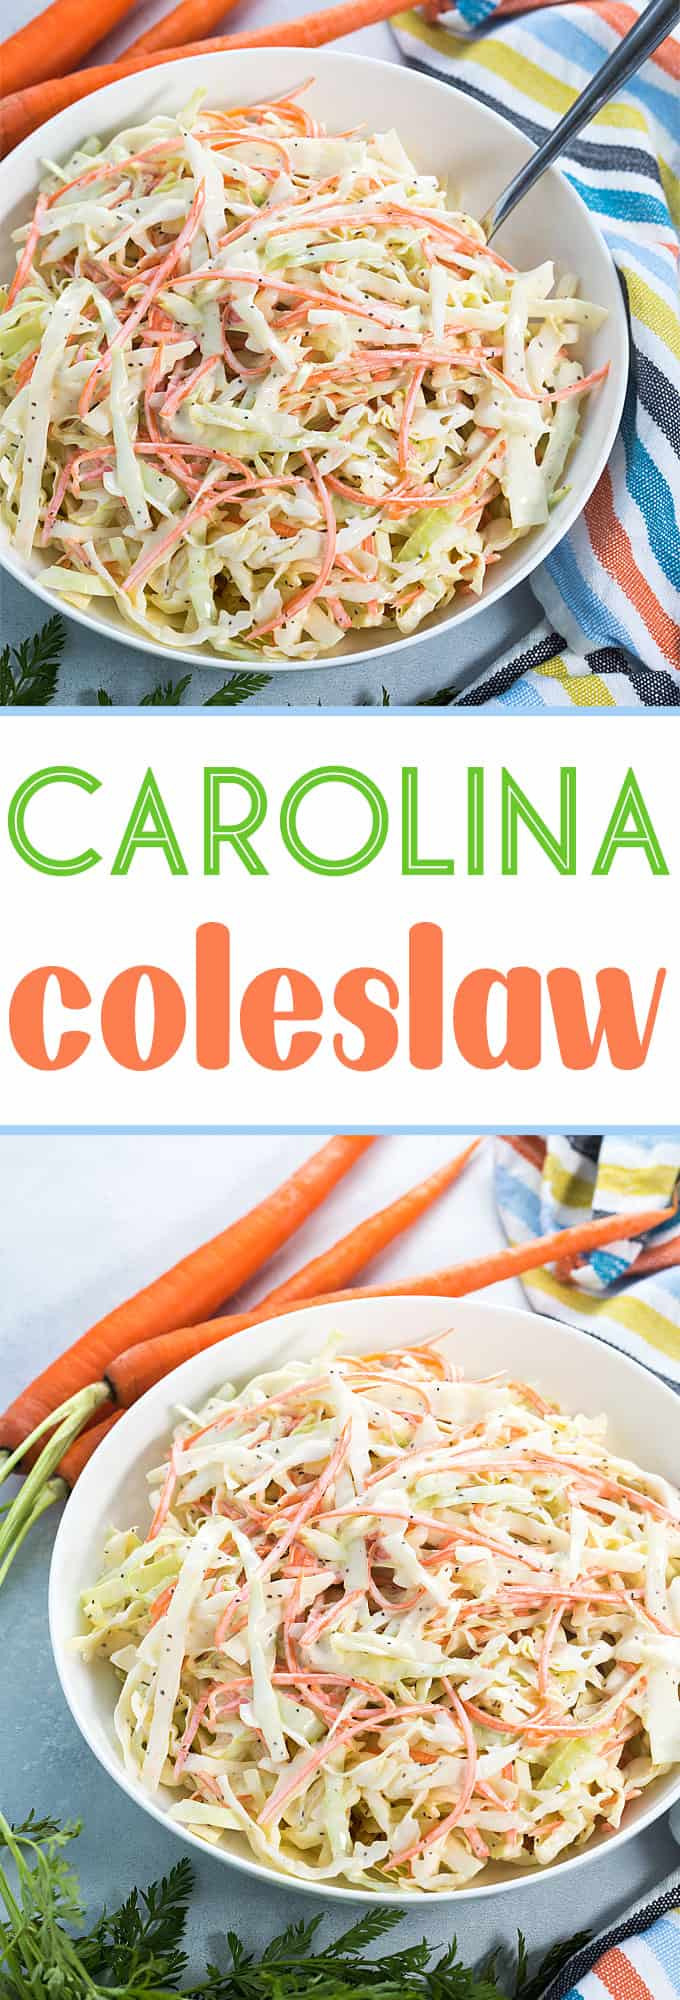 A two image vertical collage of Carolina coleslaw with overlay text in the center.